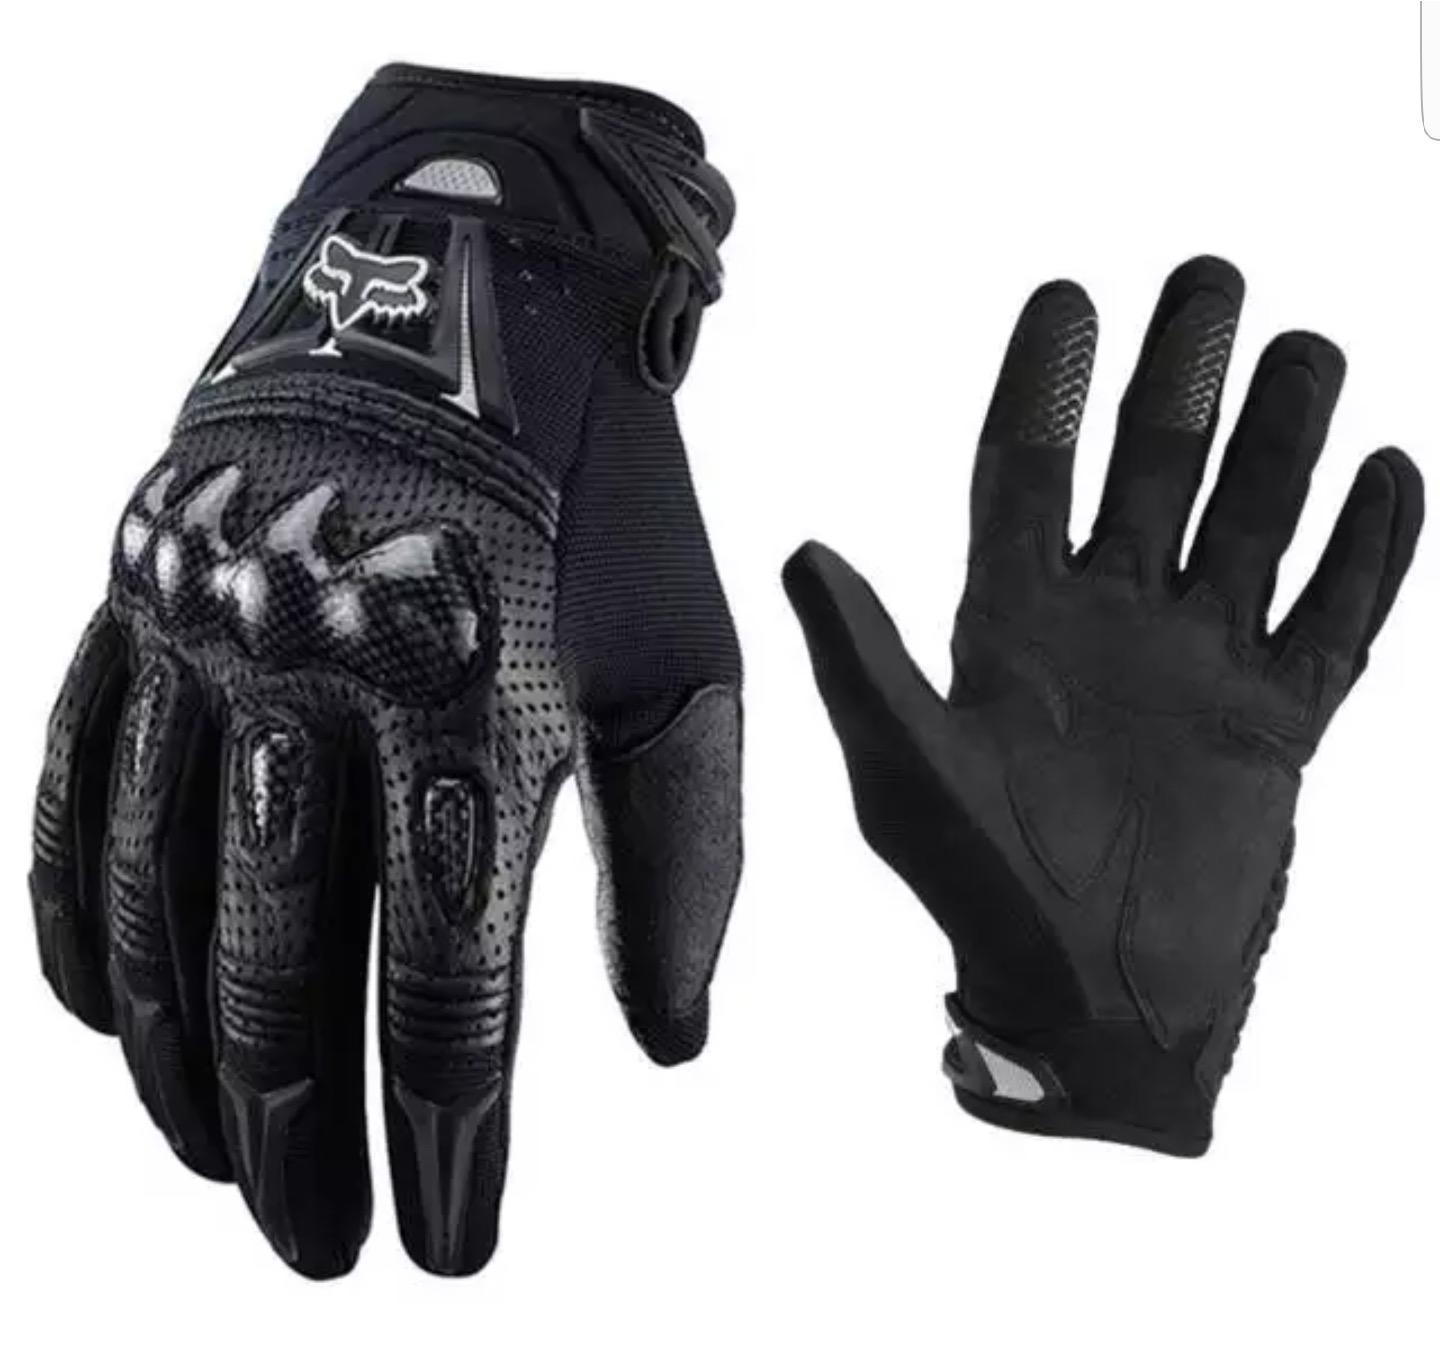 Motorcycle  gloves and leg bags